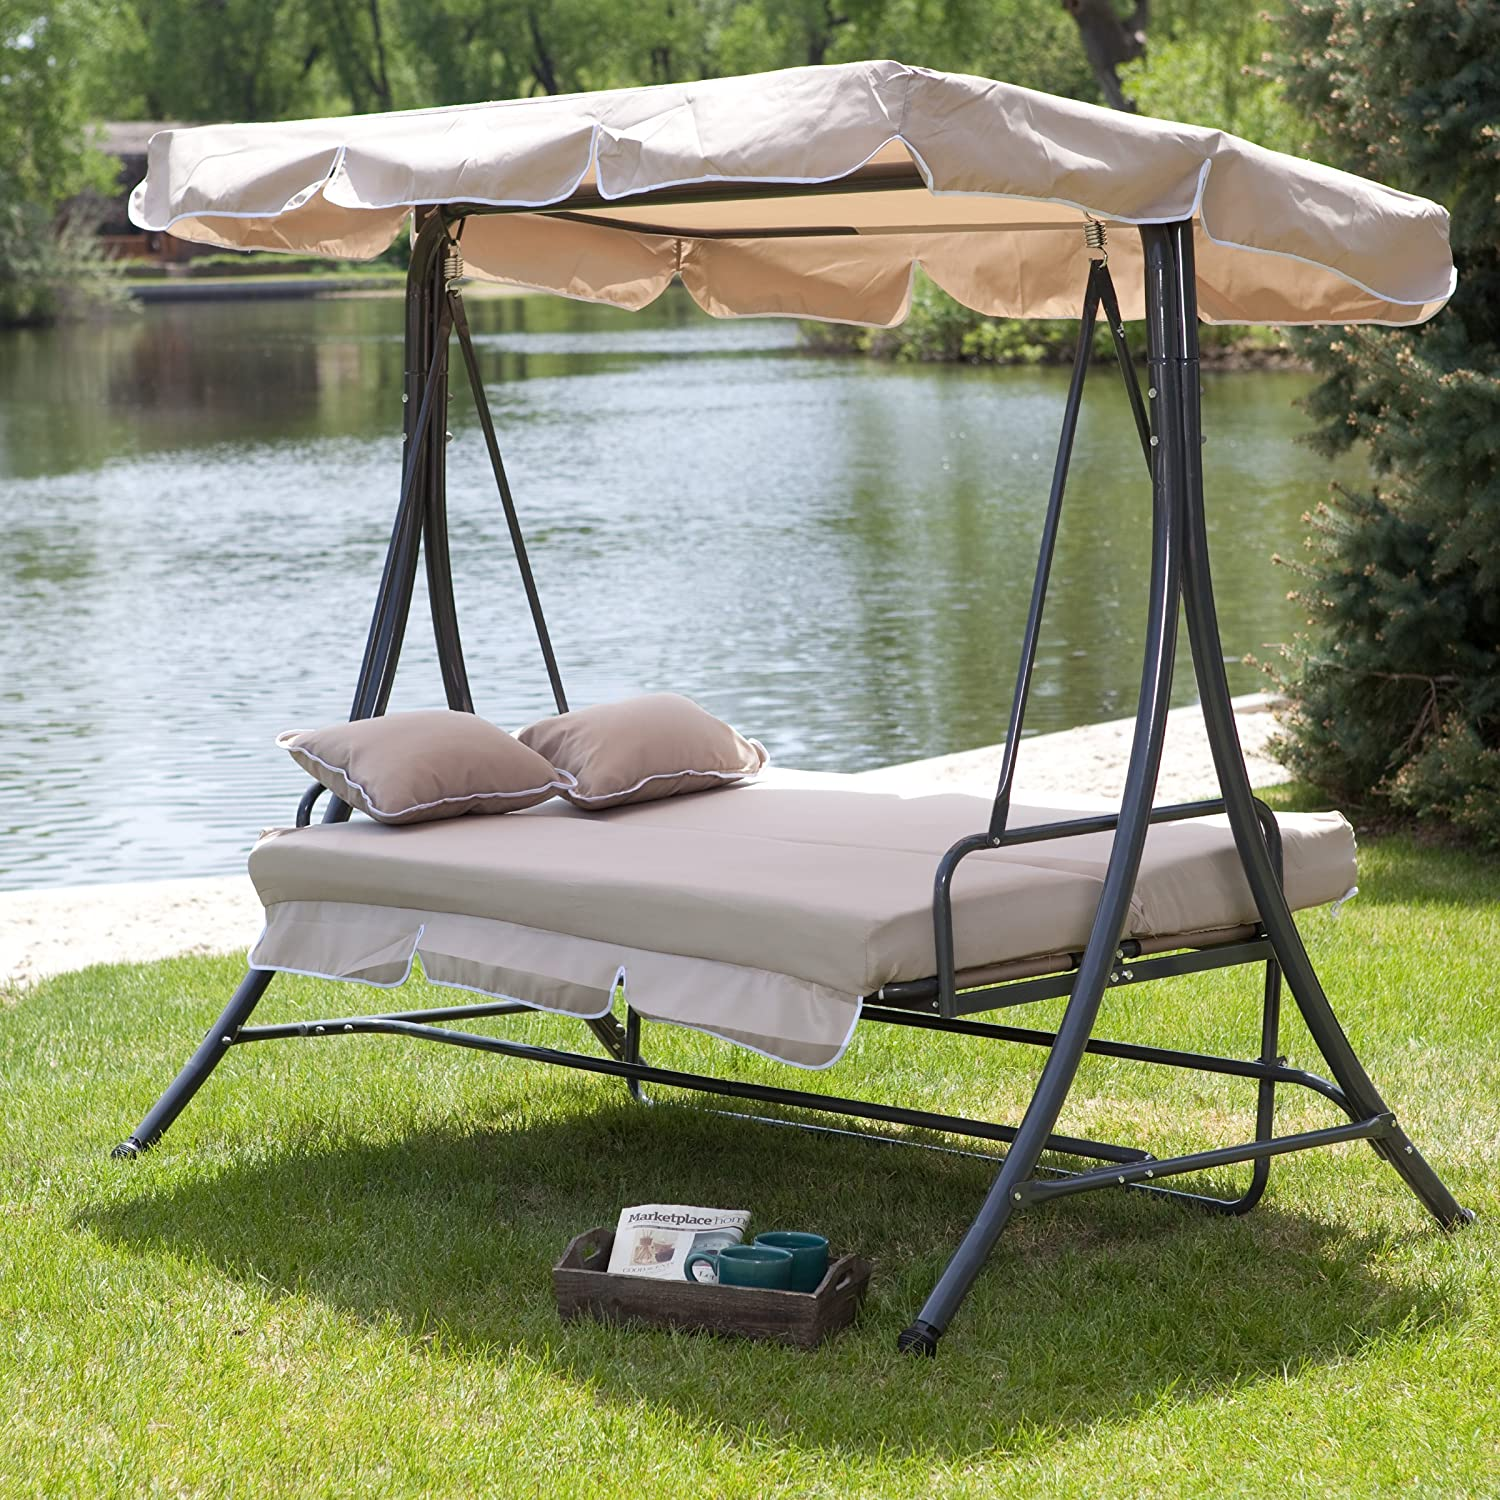 Amazon.com : Canopy Patio Porch 3 Person Swing Lounger Chair And Bed    Cappuccino : Garden U0026 Outdoor